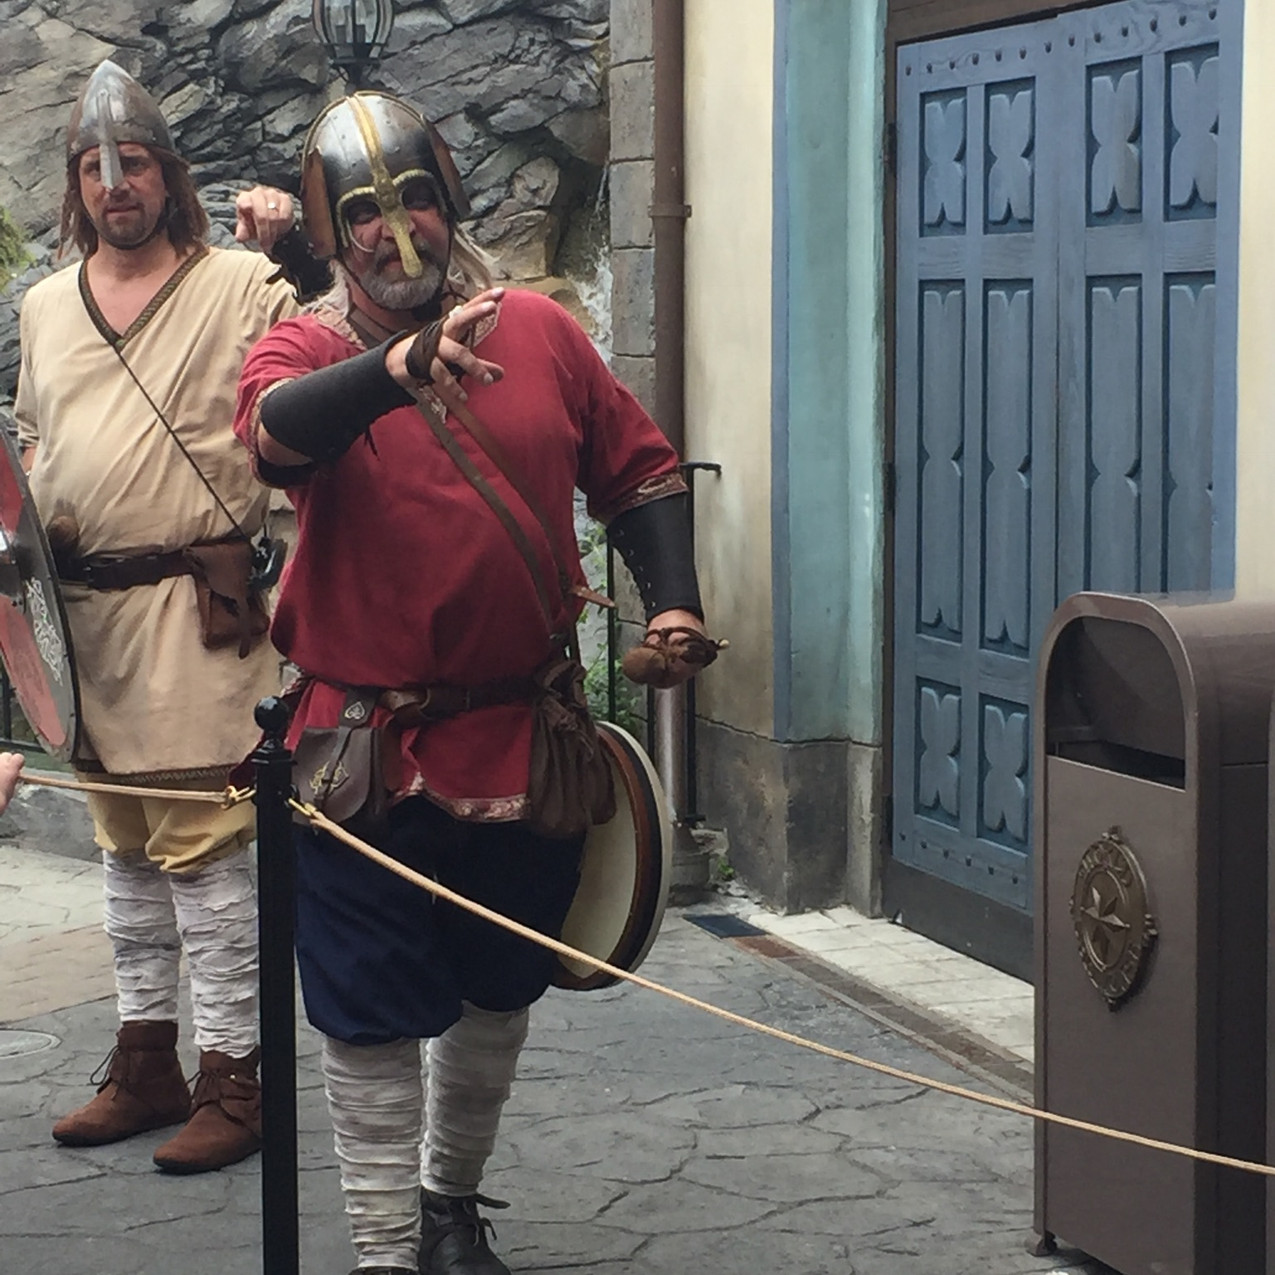 Vikings roam the streets of Norway for photos and fun.